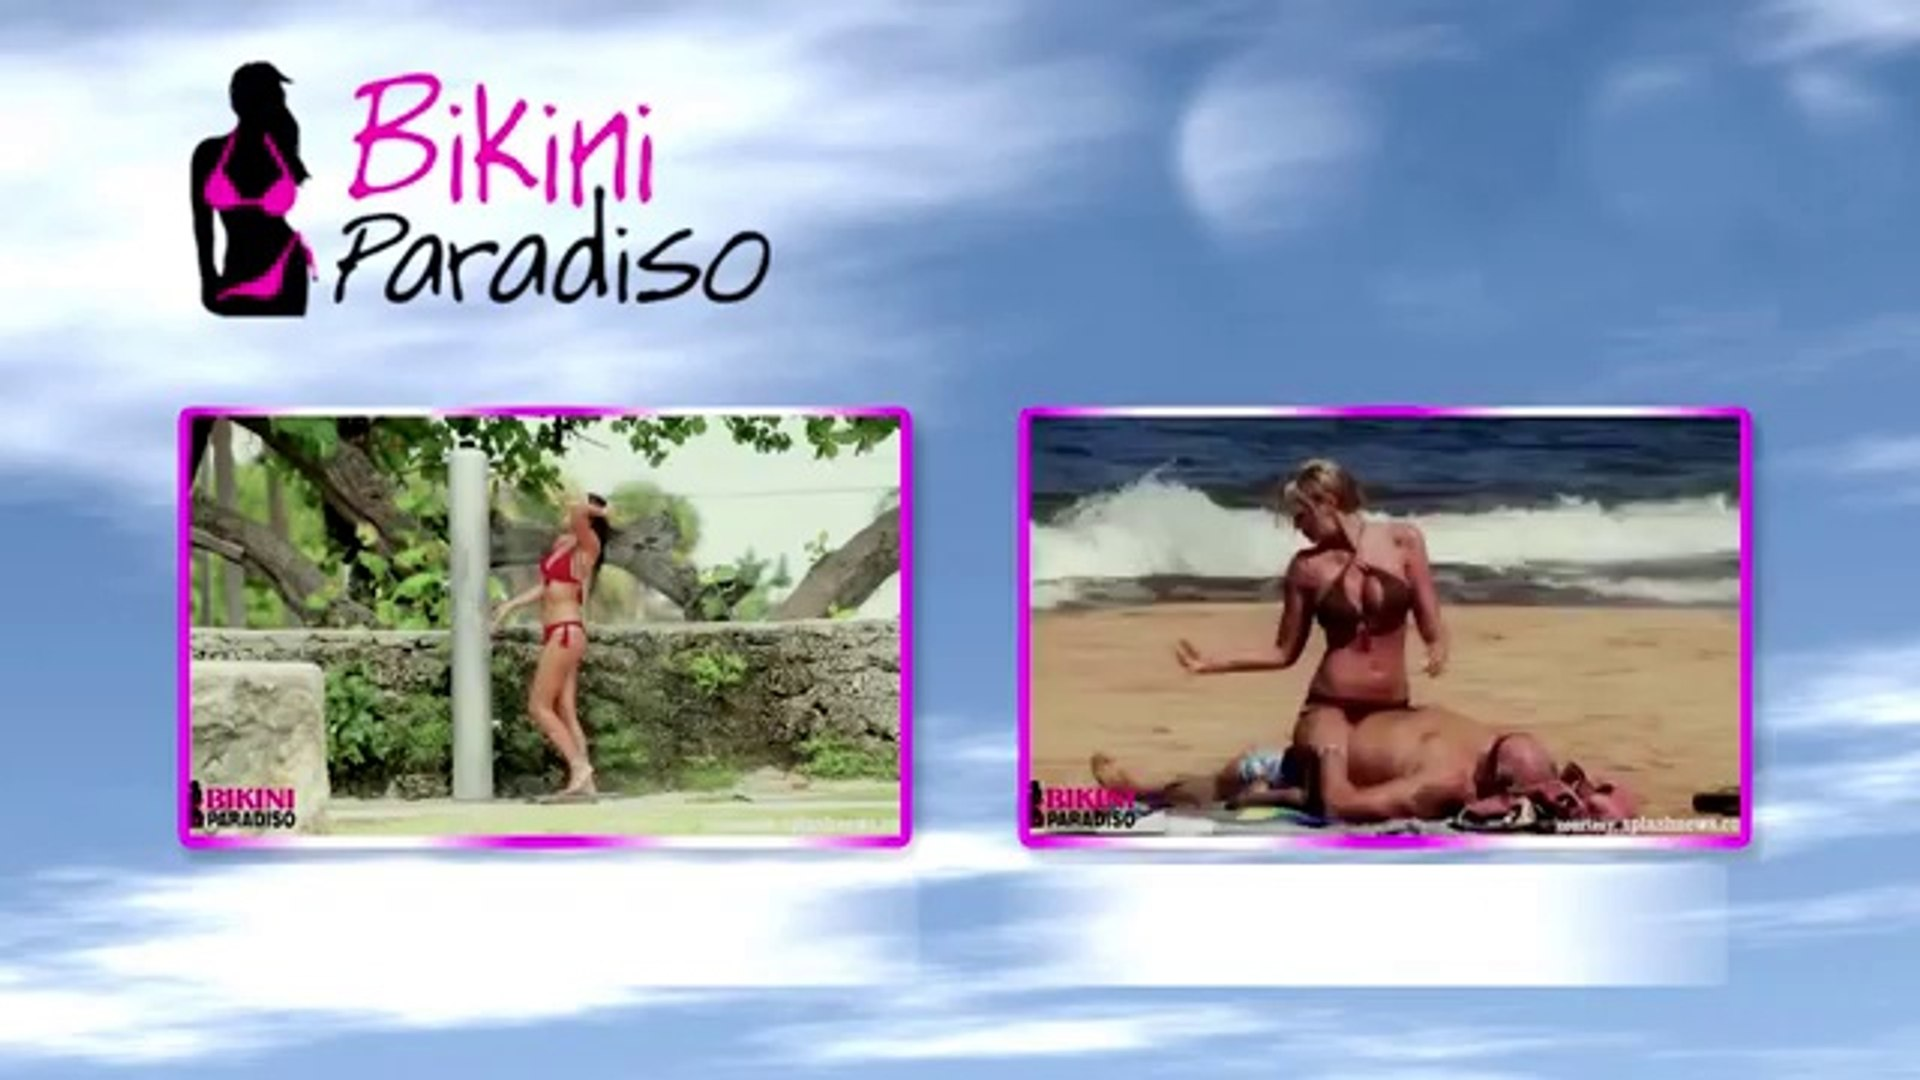 Hot & Sexy Claudia Romani Taking A Shower In Bikini bikini paradiso1 FULL HD